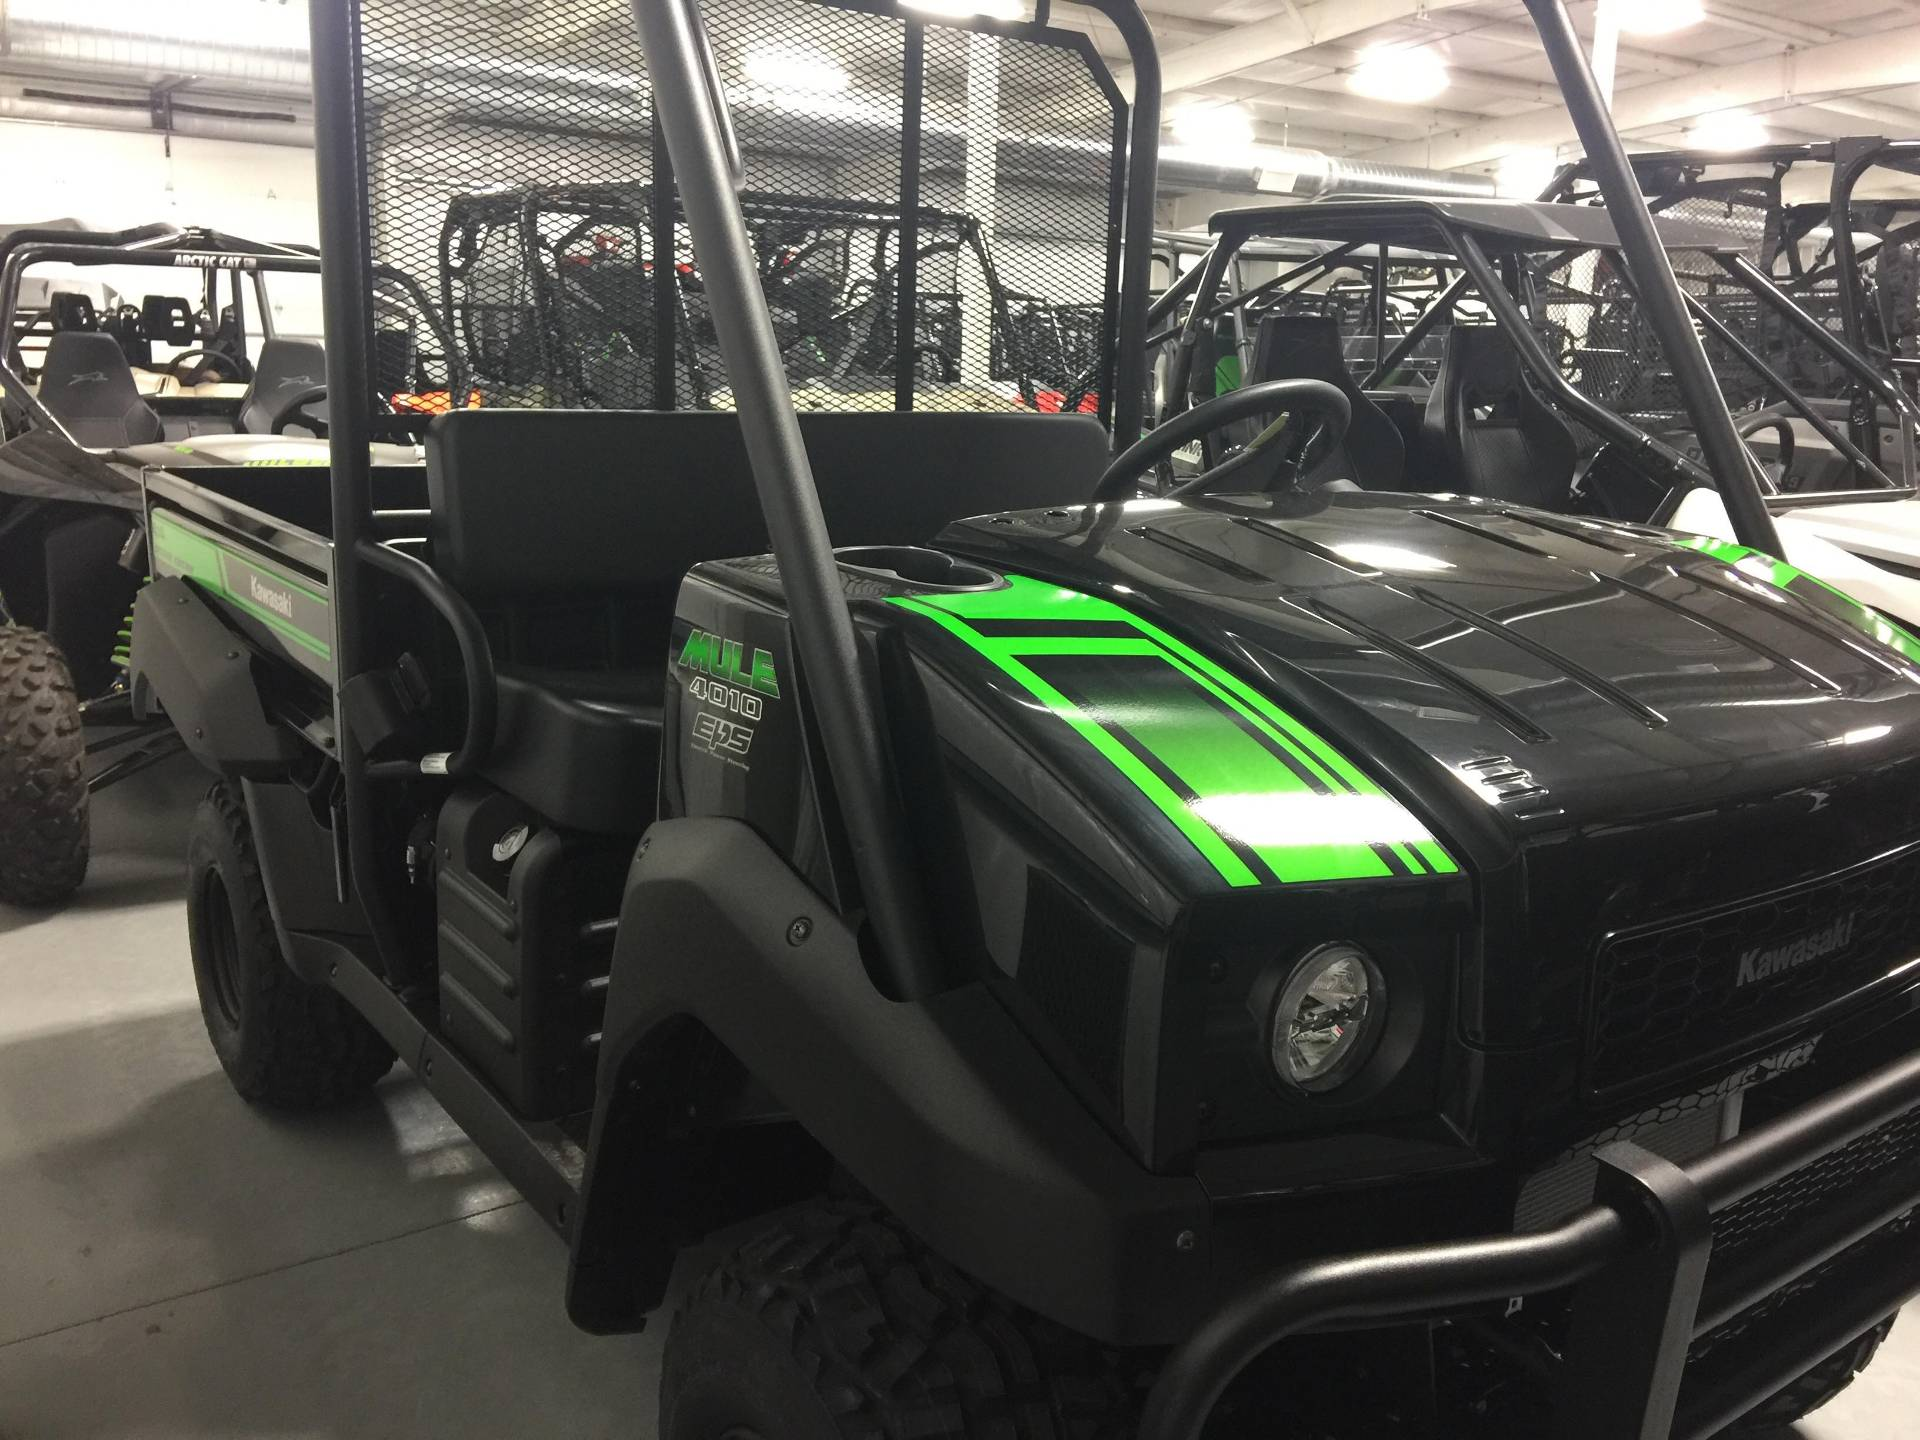 2018 Kawasaki KAF620TJF in Harrisburg, Illinois